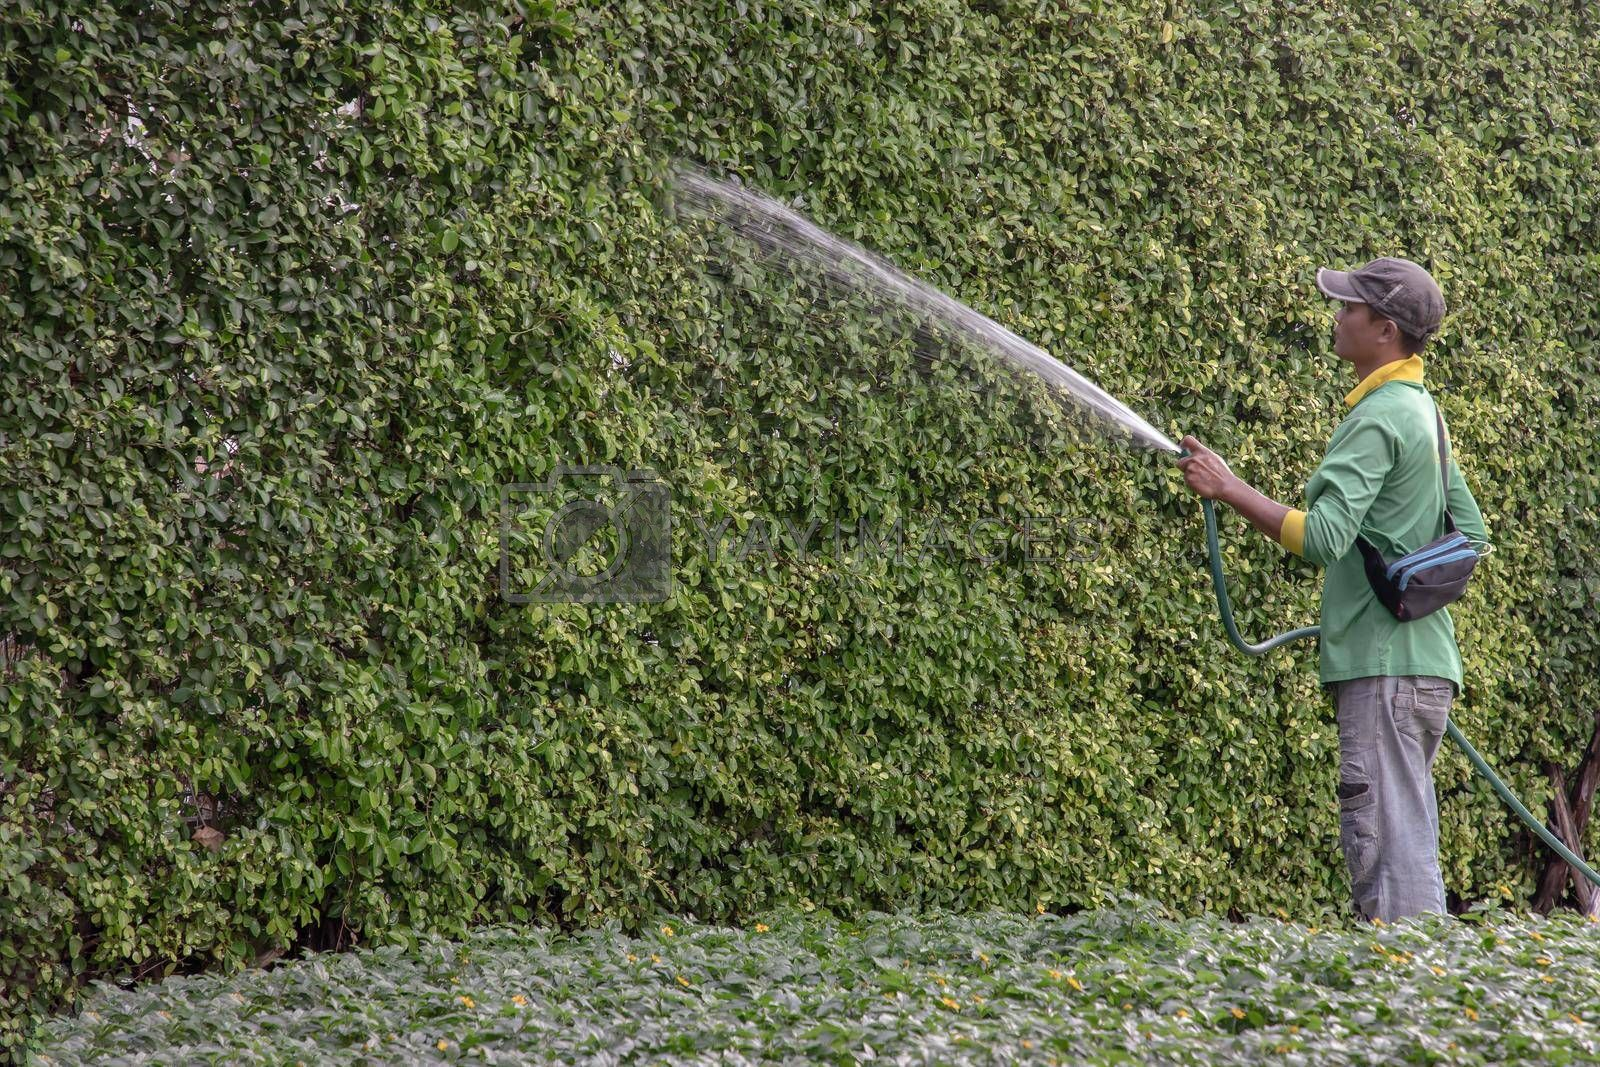 Bangkok, Thailand - Jan 14, 2021 : The gardener was using a rubber hose to water the trees. Injection of water from rubber tube, Copy space, Focus and blur.